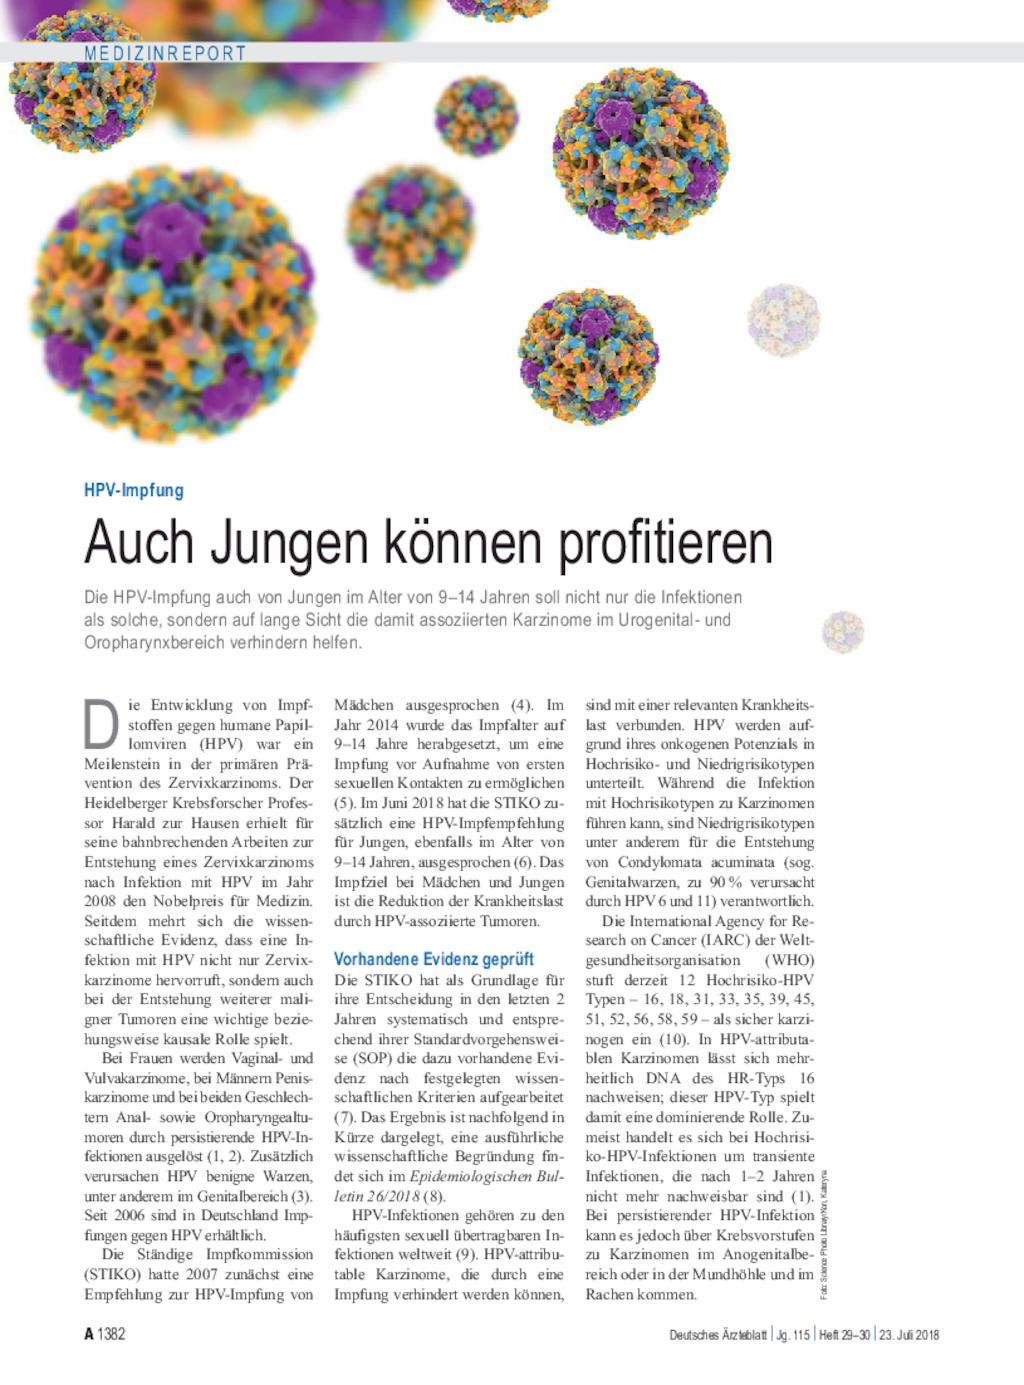 Hpv impfung fur jungen impfstoff, The HPV Vaccine On Trial